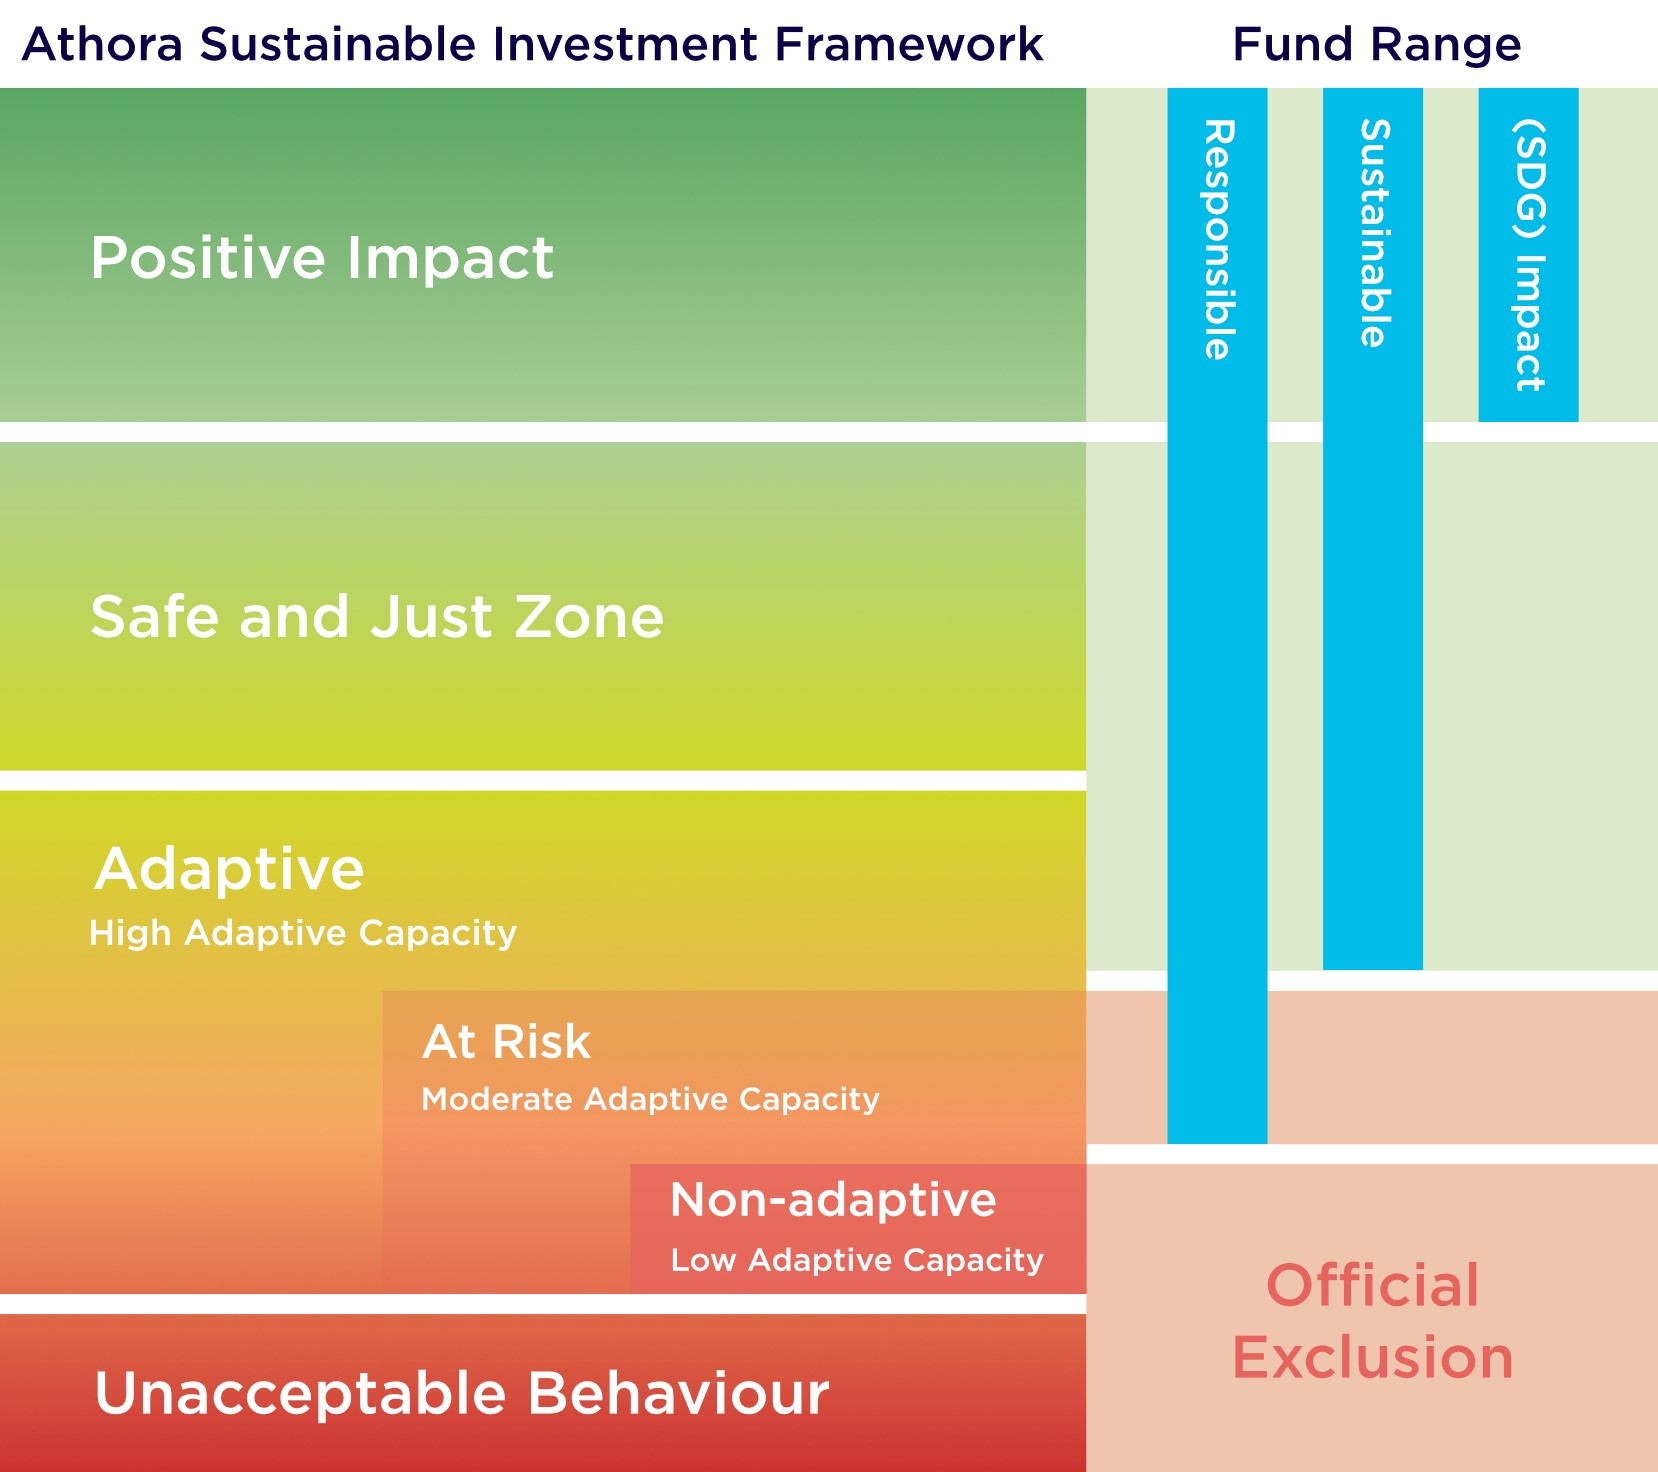 Athora Sustainable Investment Framework